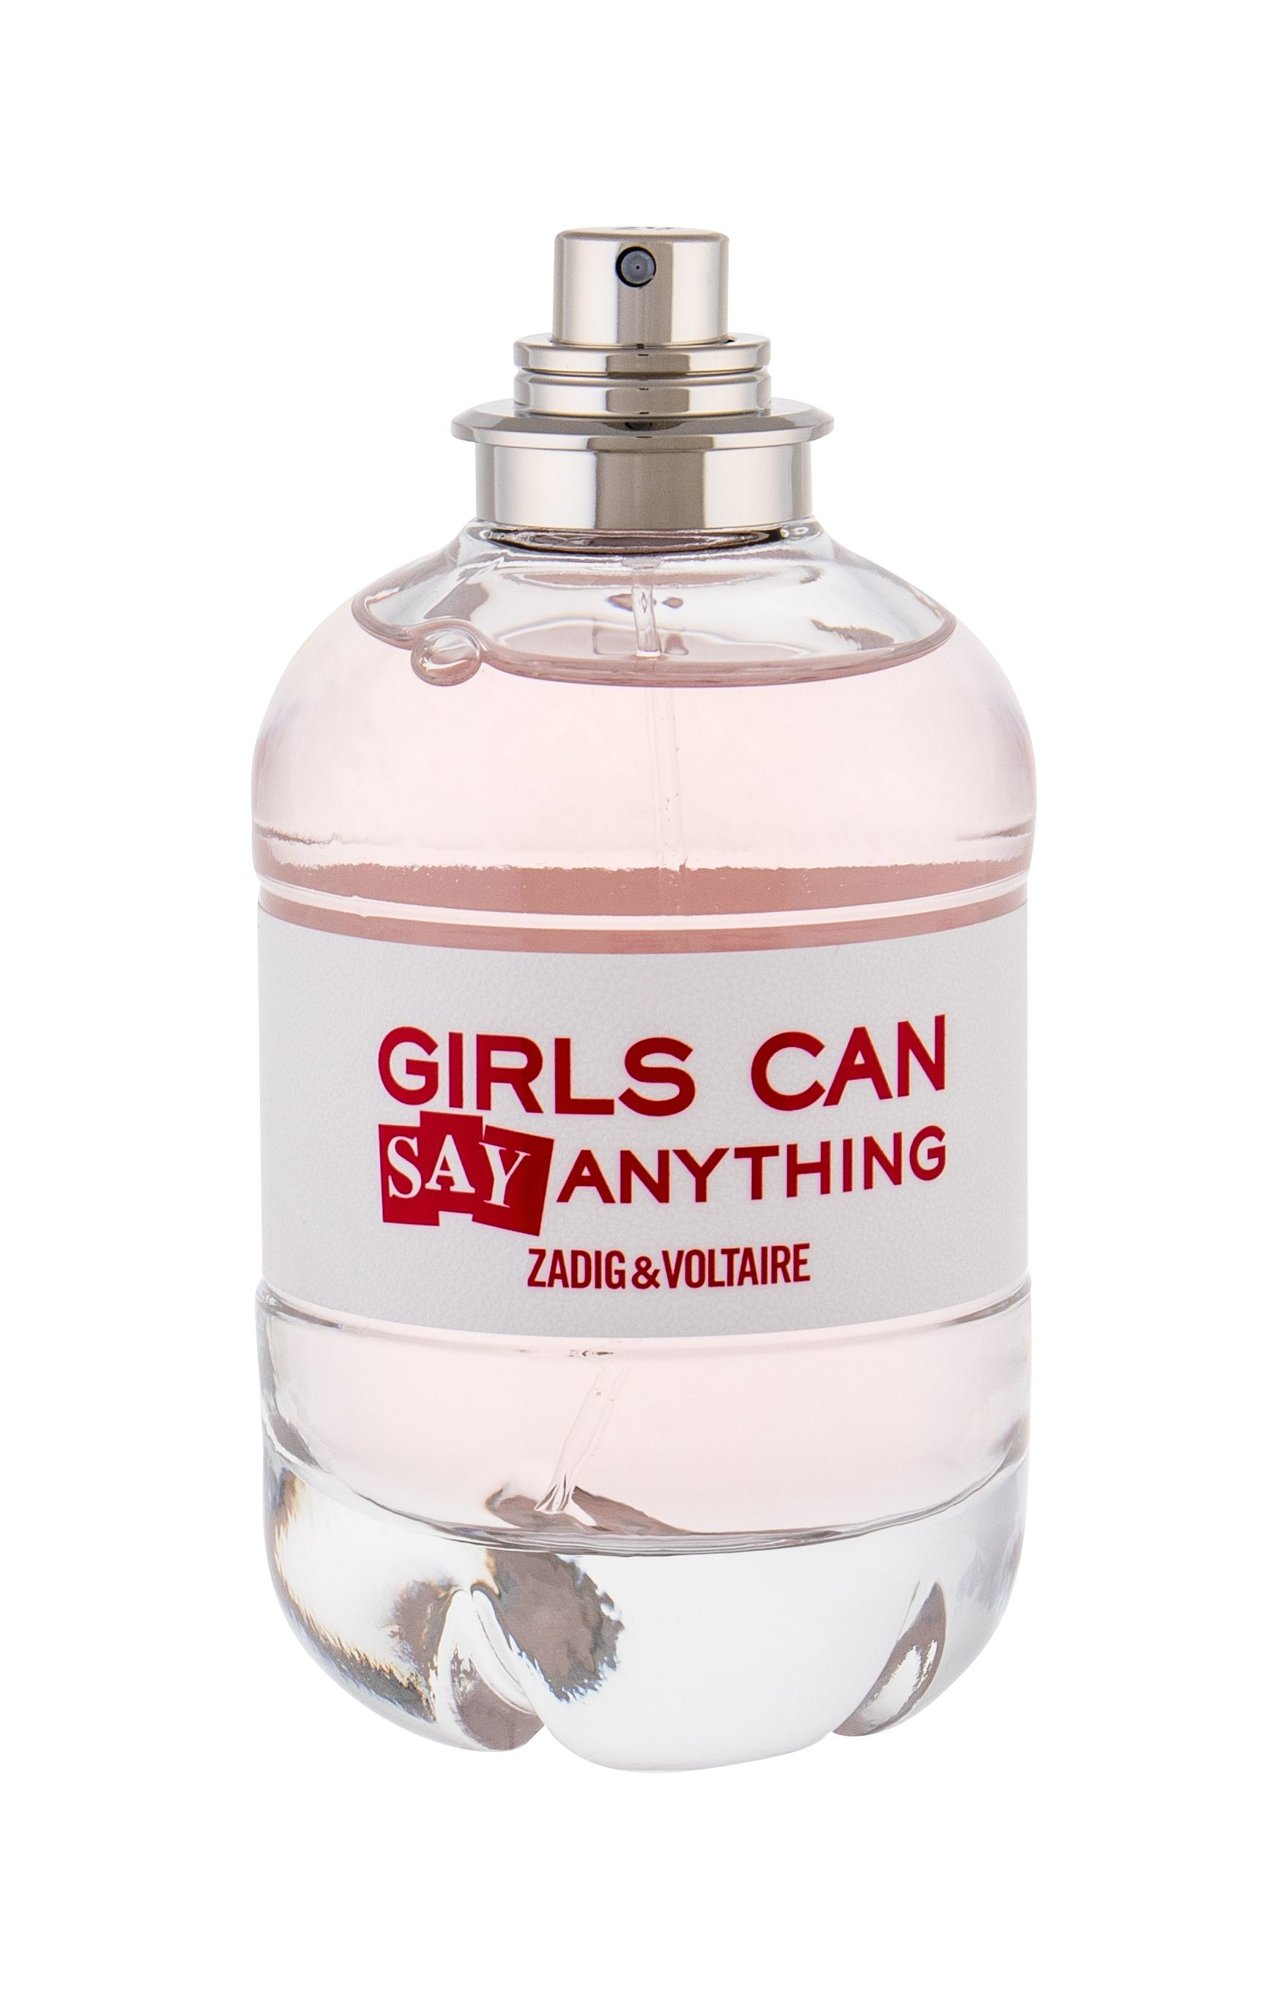 Zadig & Voltaire Girls Can Say Anything, Parfumovaná voda 90ml -Tester